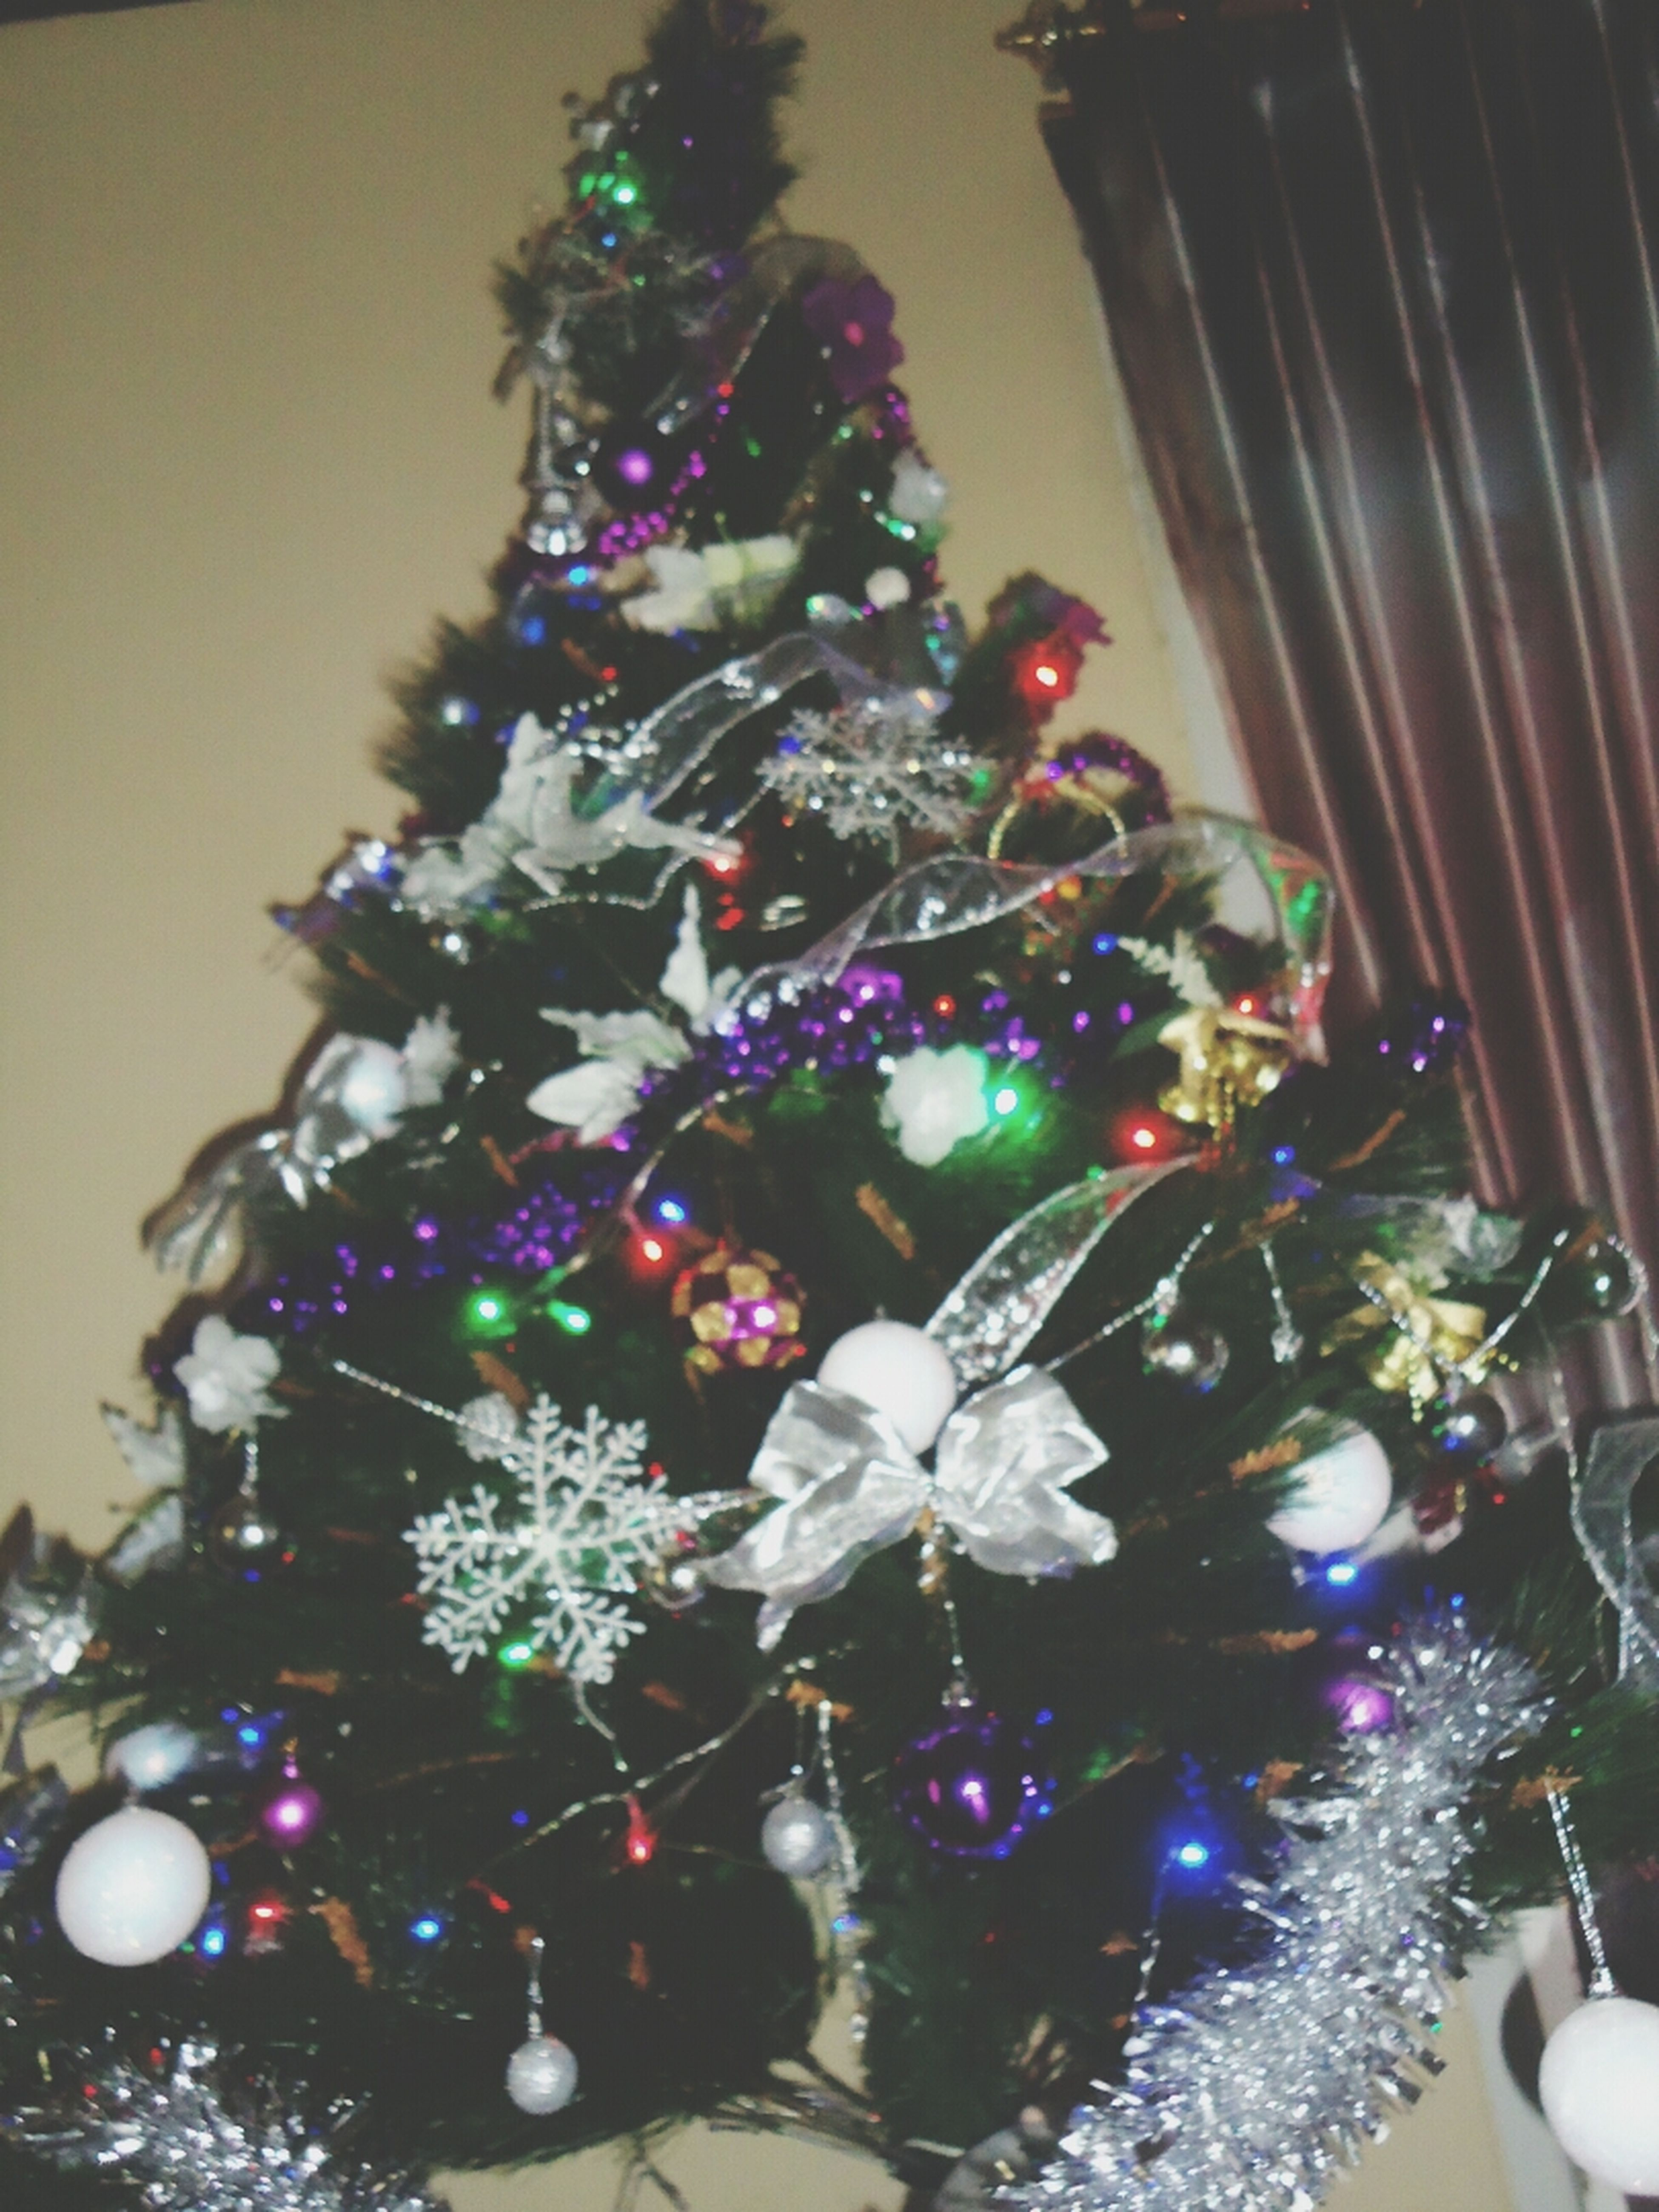 can't wait for cristmas